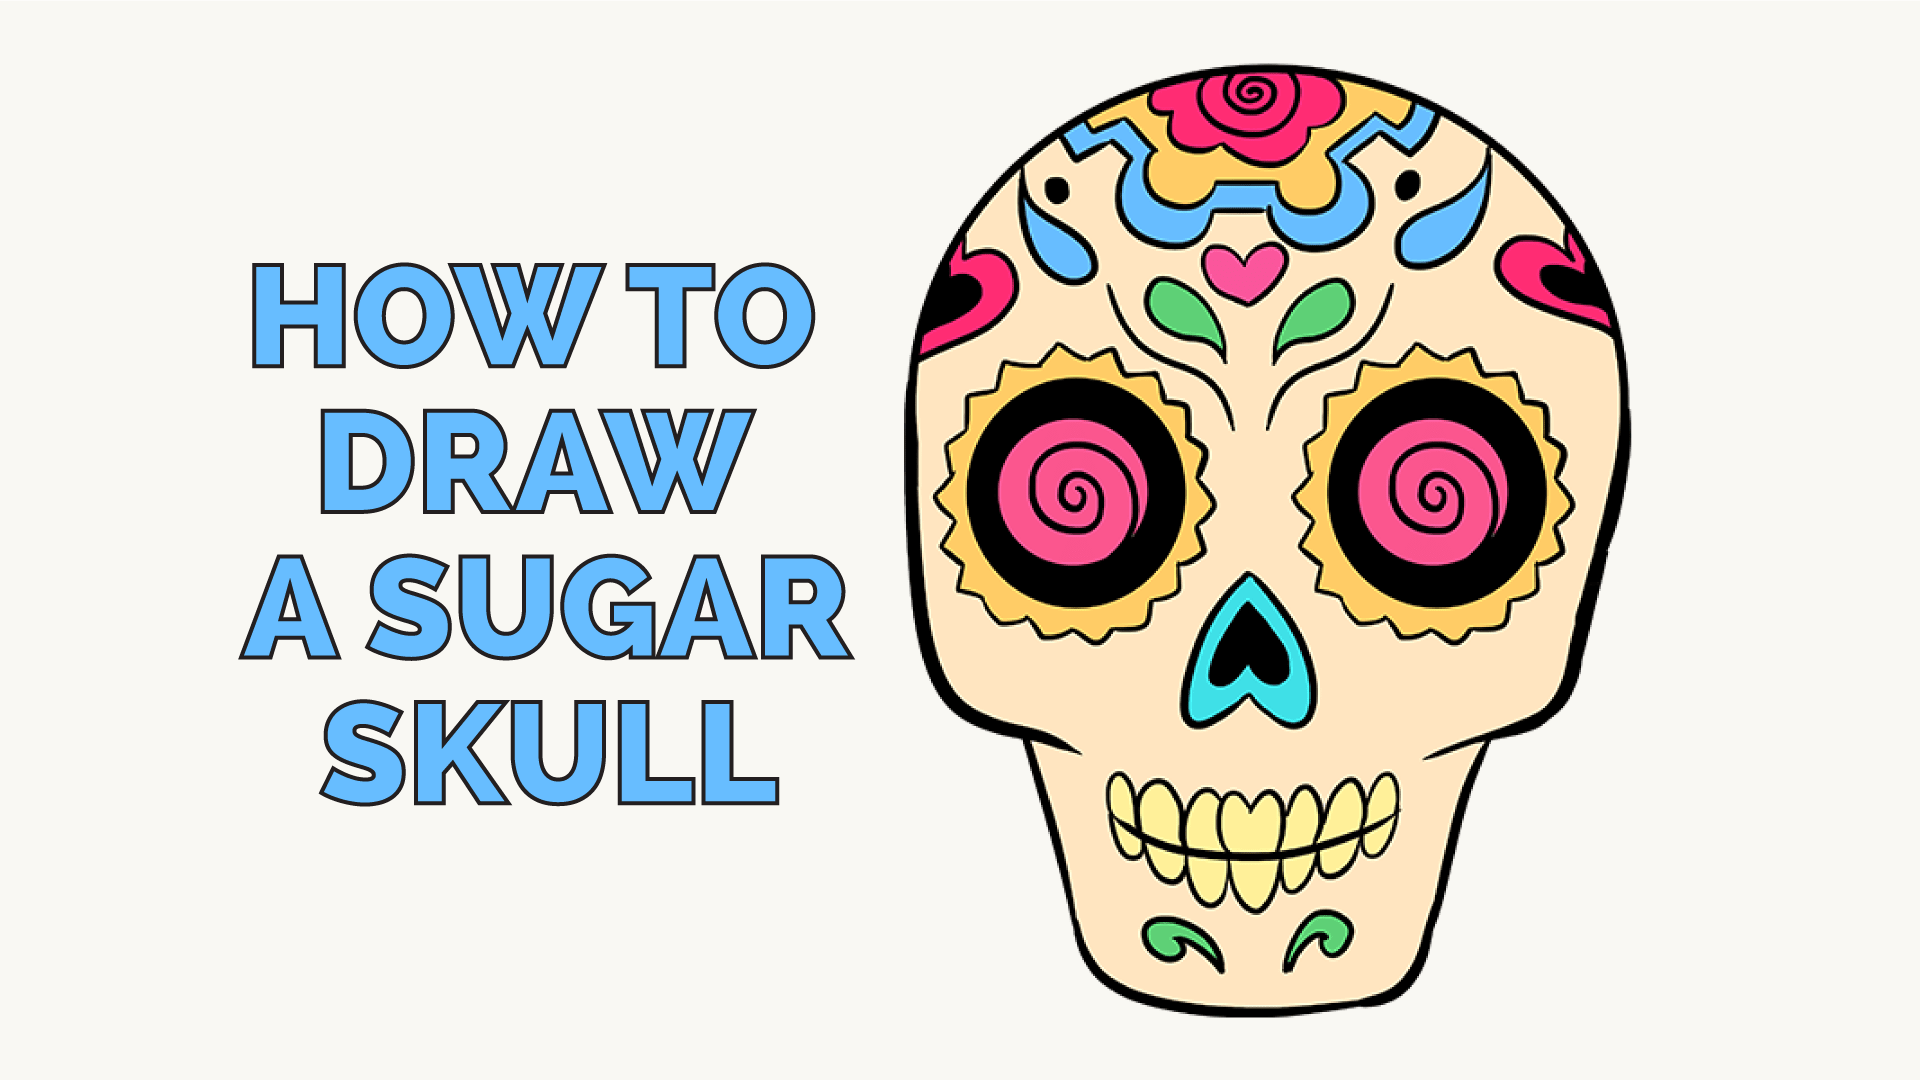 How To Draw A Sugar Skull Step By Step Tutorial Easy Drawing Guides